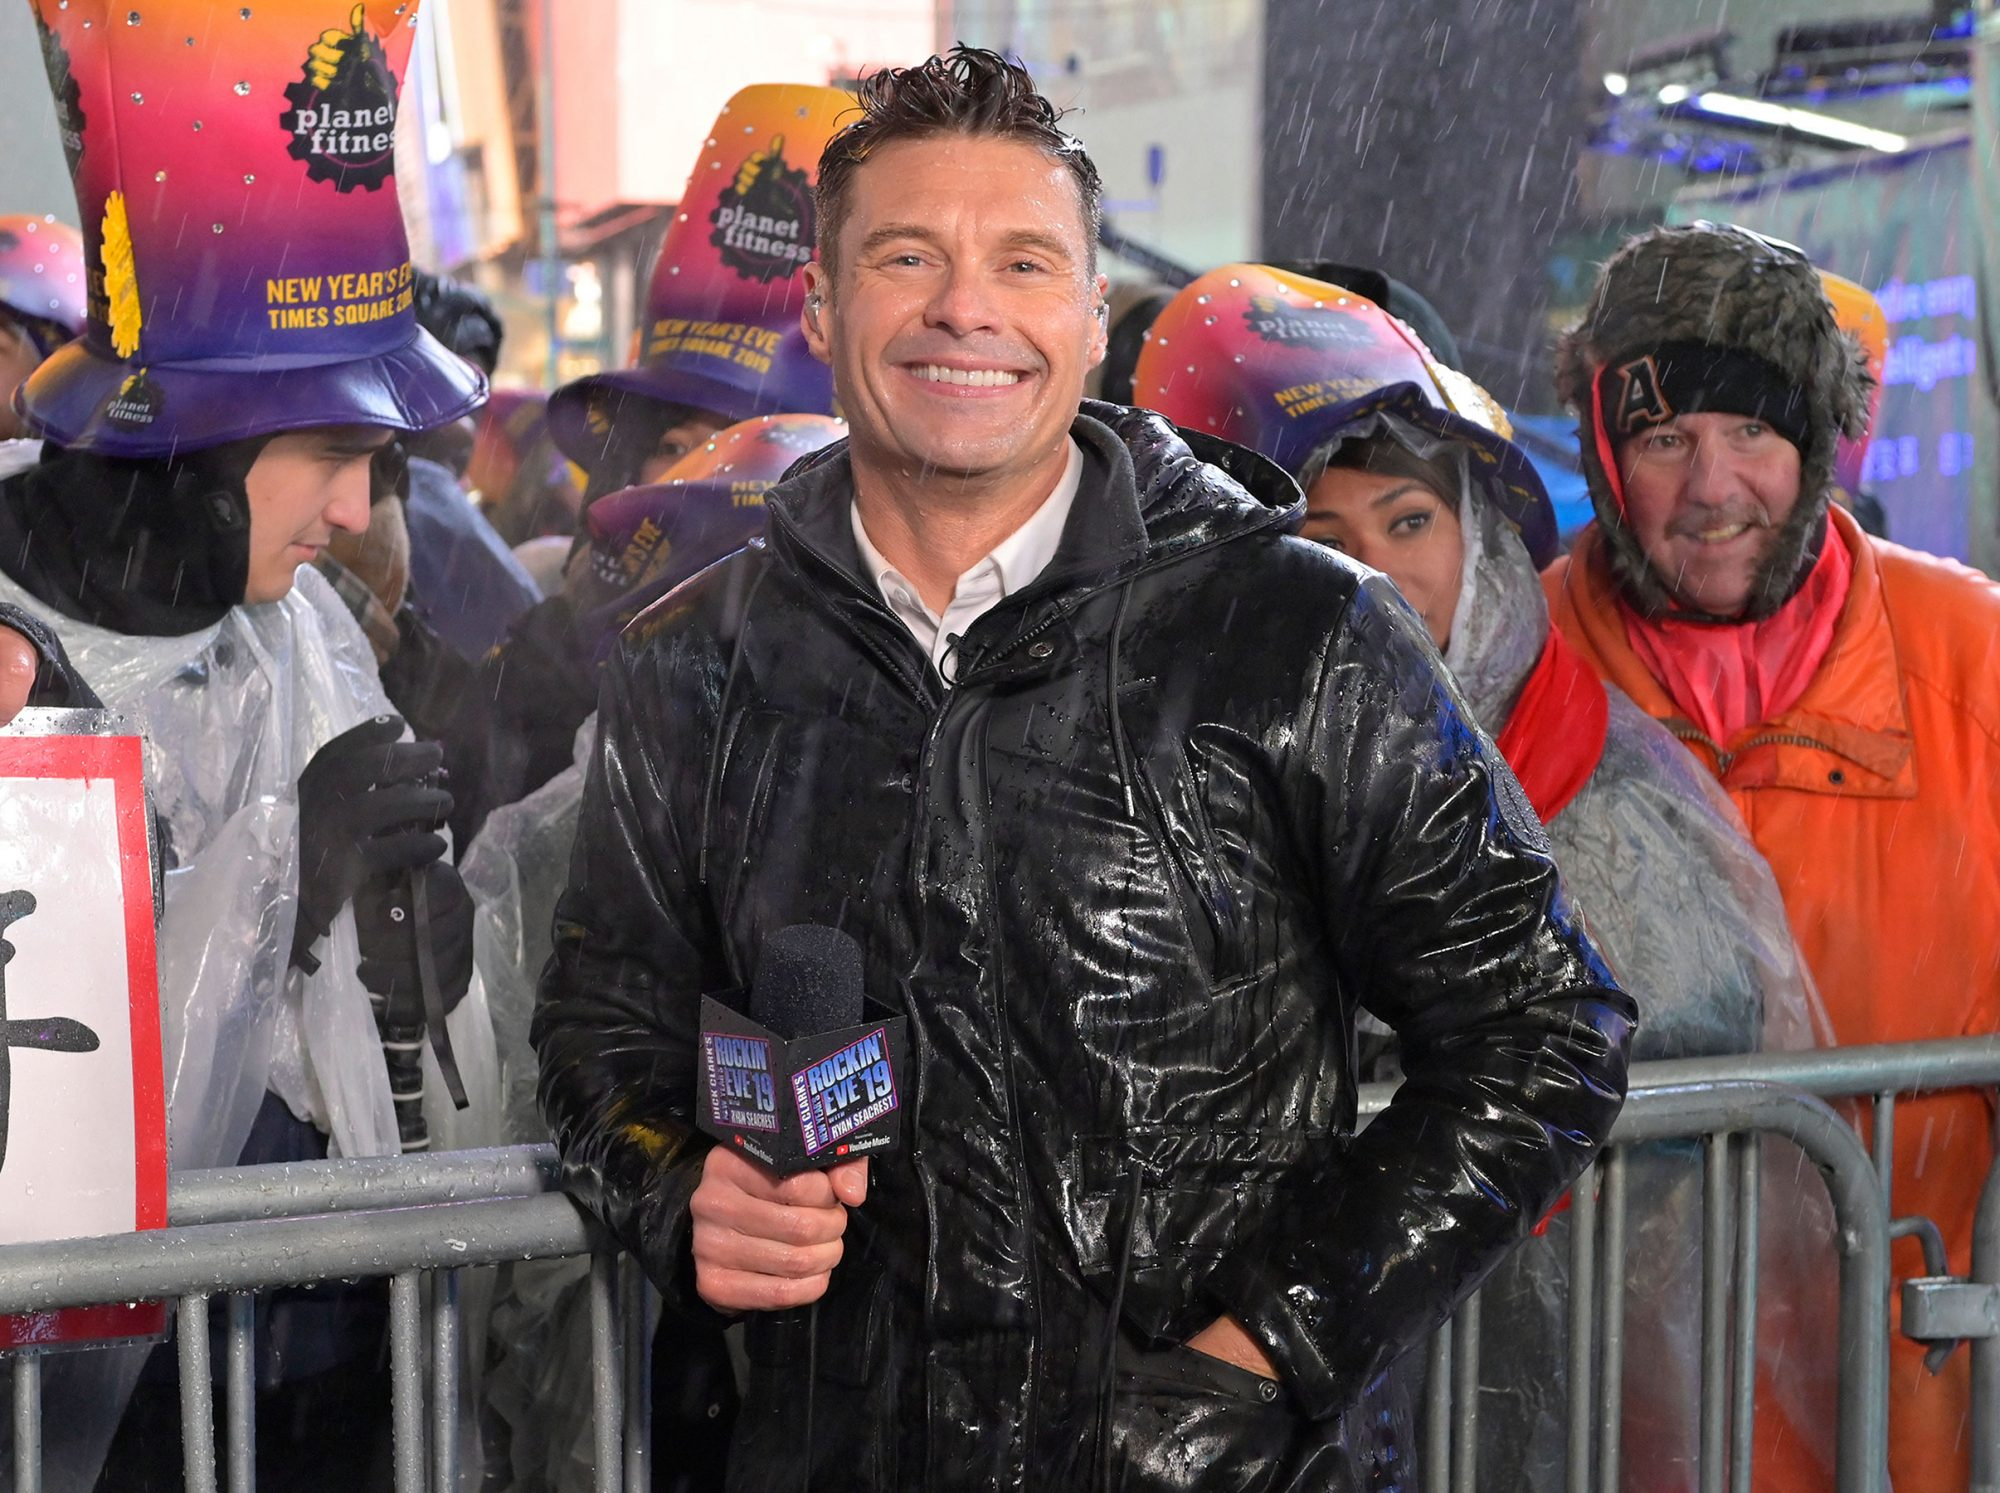 ABC's Coverage of Dick Clark's New Year's Rockin' Eve With Ryan Seacrest 2019